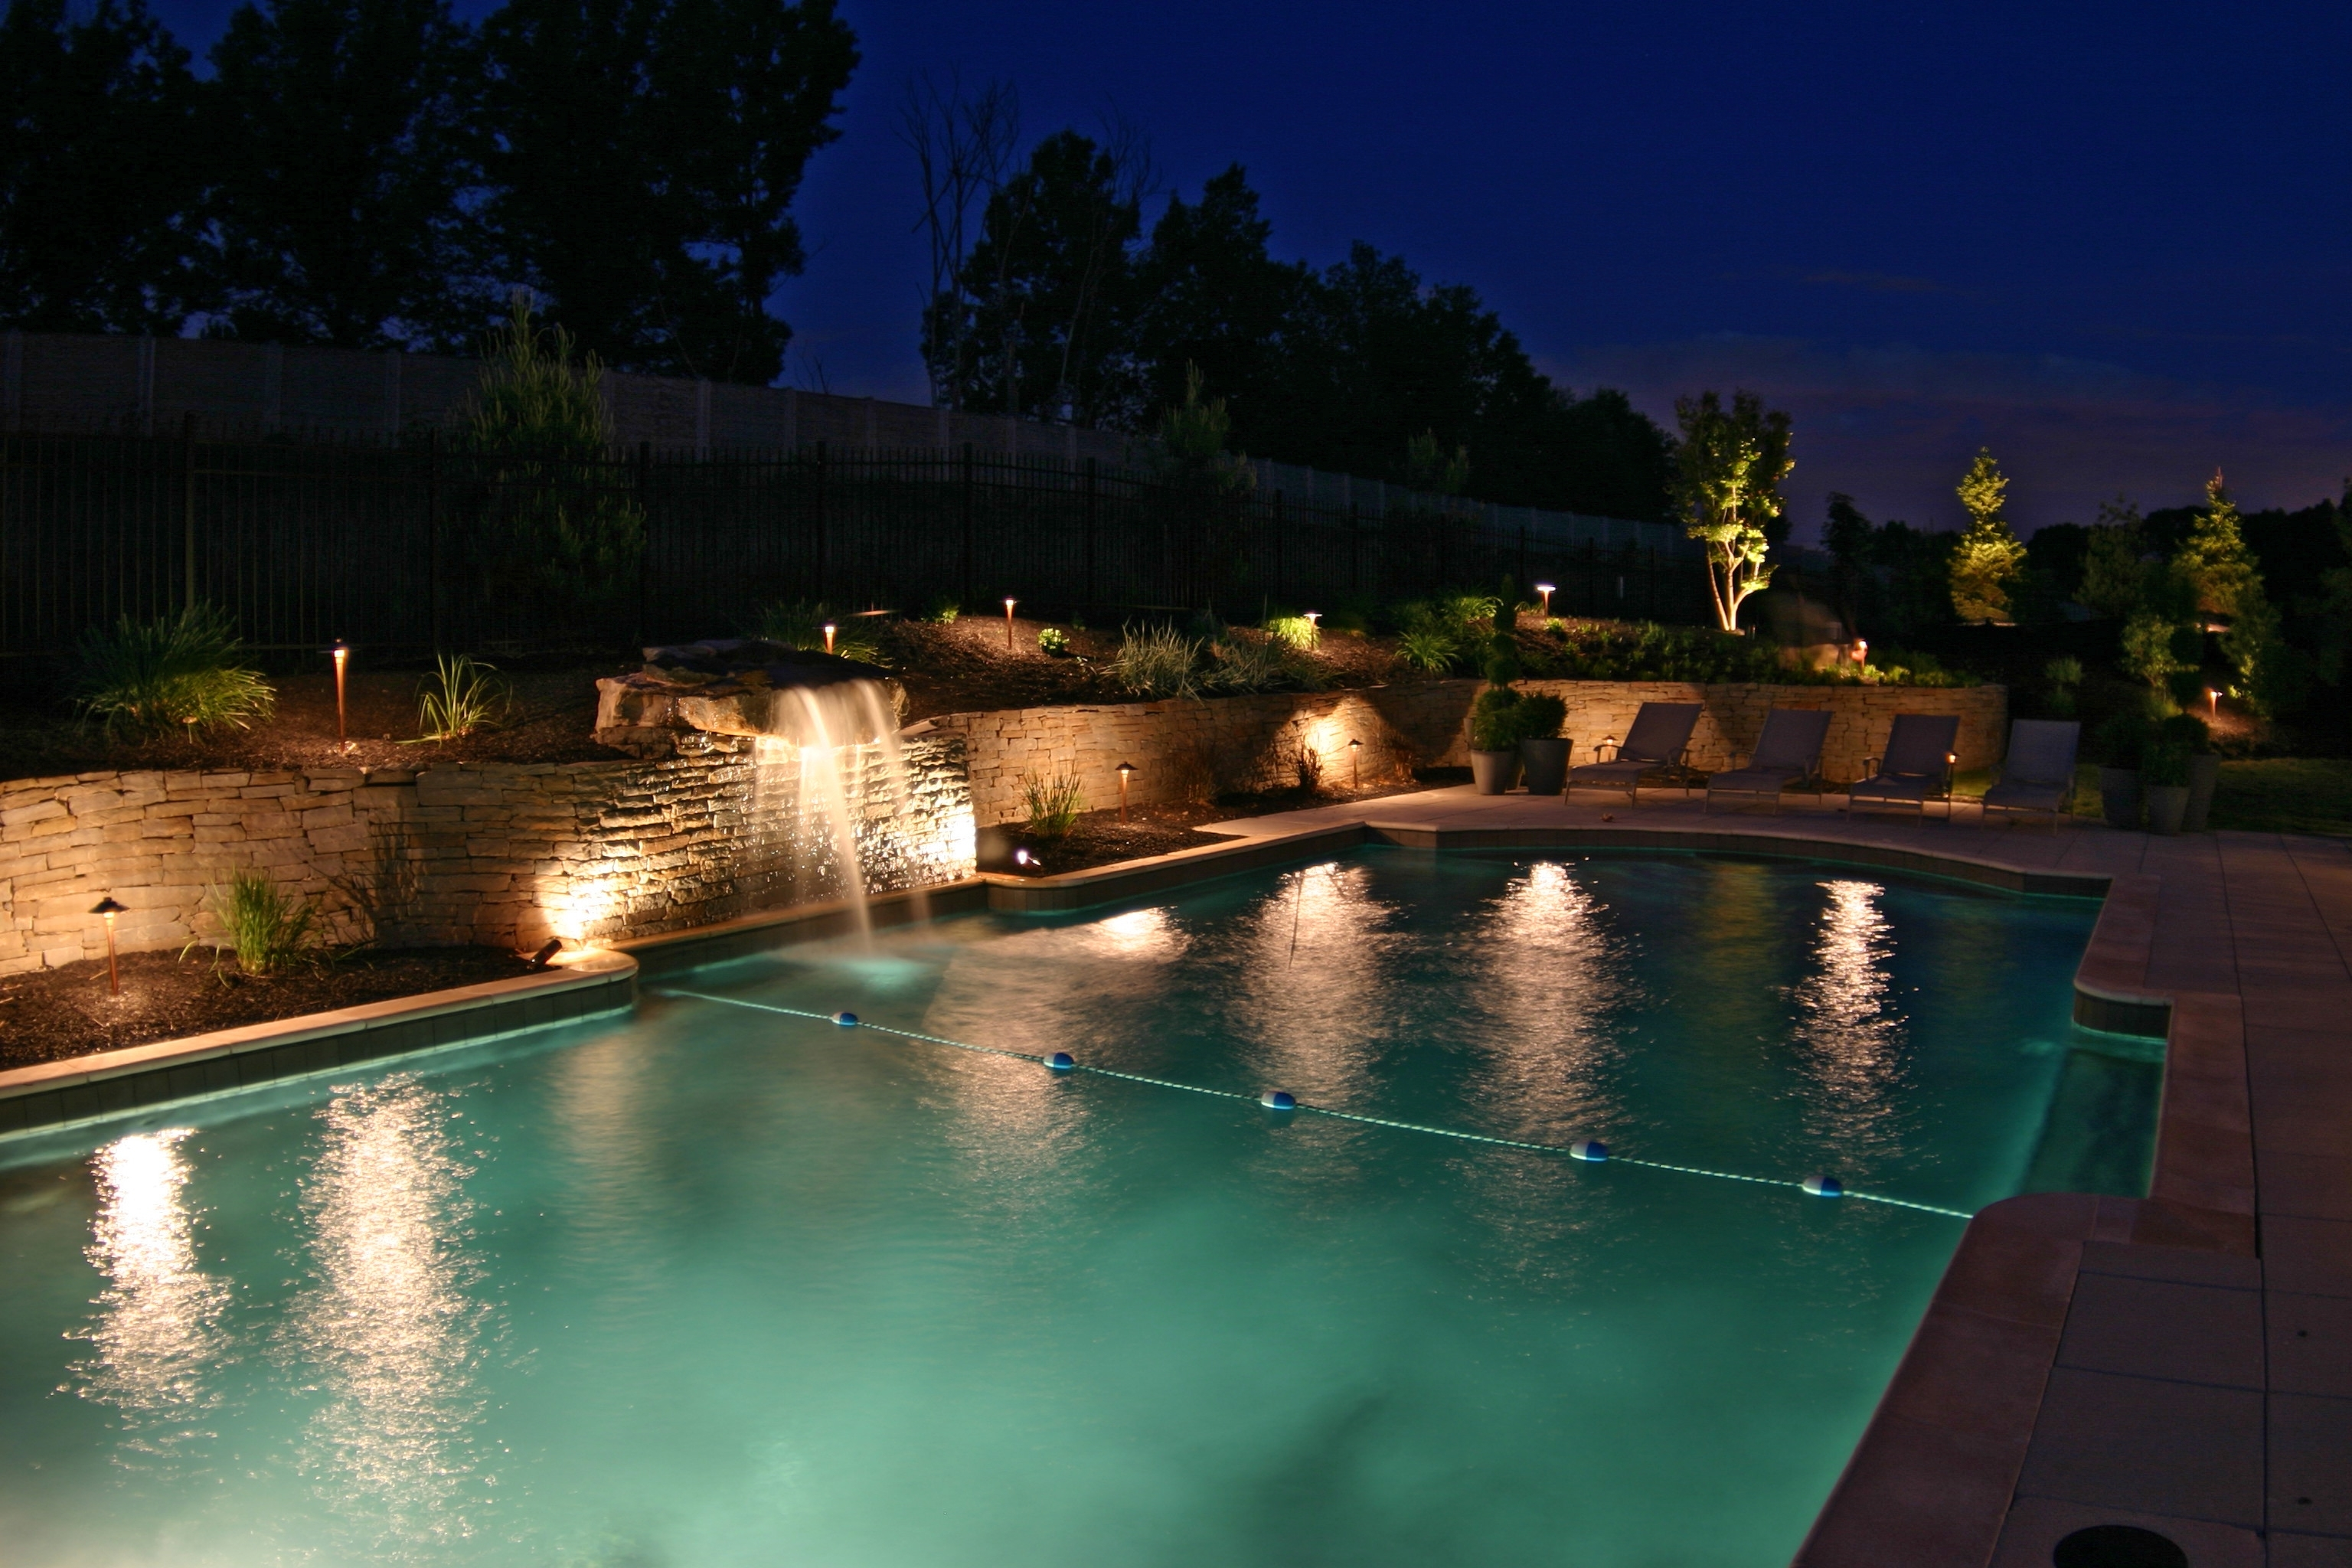 Recent Outdoor Lanterns For Poolside Throughout 33 Staggering Outdoor Pool Lanterns Lighting Exciting That Draws A (Gallery 1 of 20)